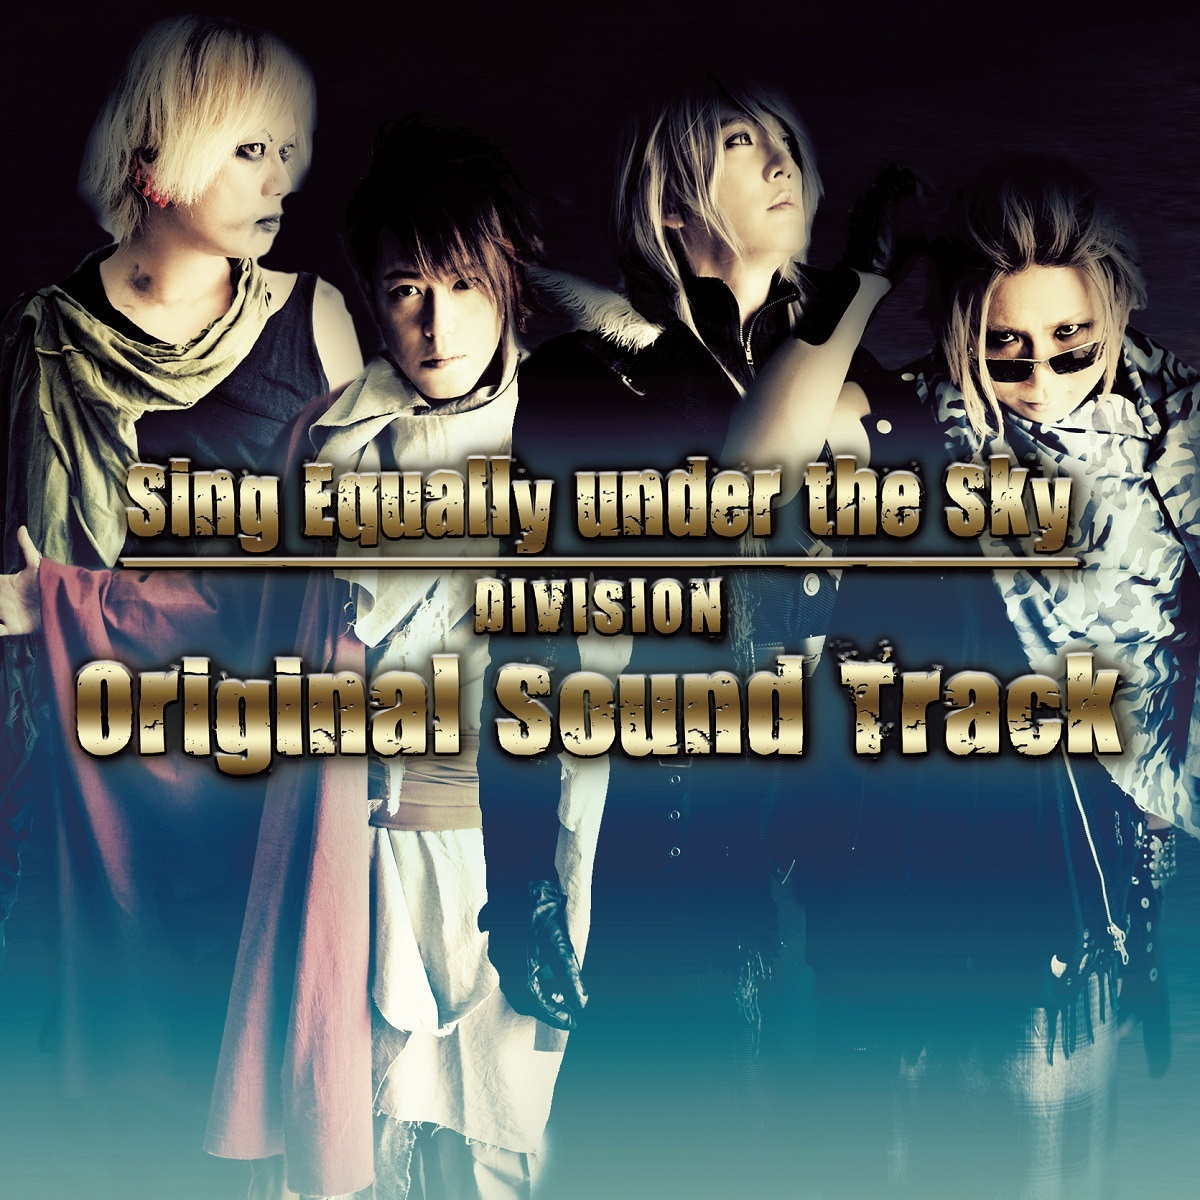 『Sing Equally under the Sky ~DIVISION~  Original Sound Track』